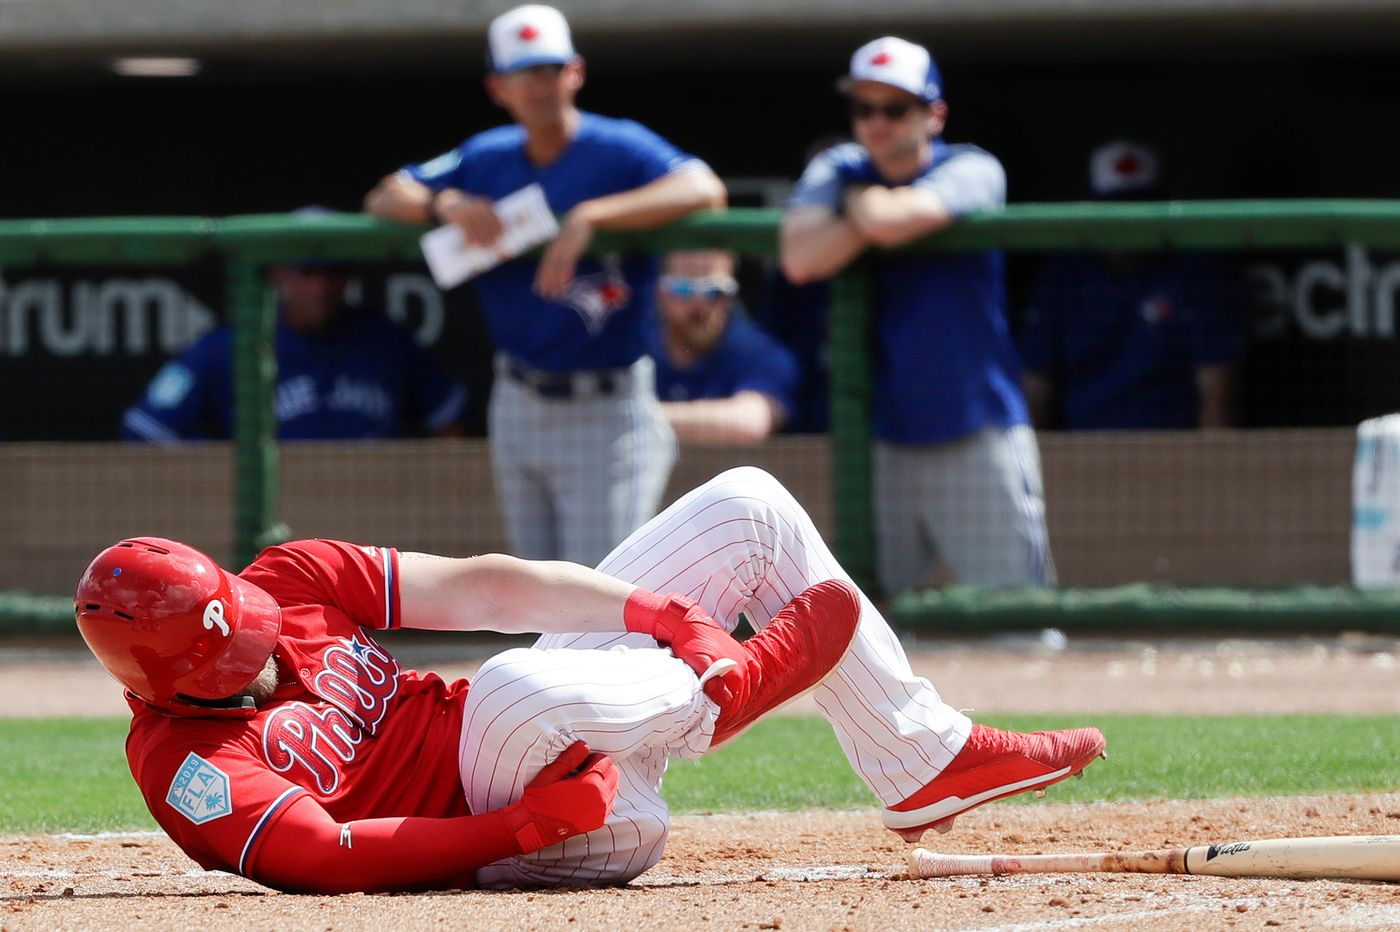 Bryce Harper leaves Phillies game with foot contusion after being hit by pitch